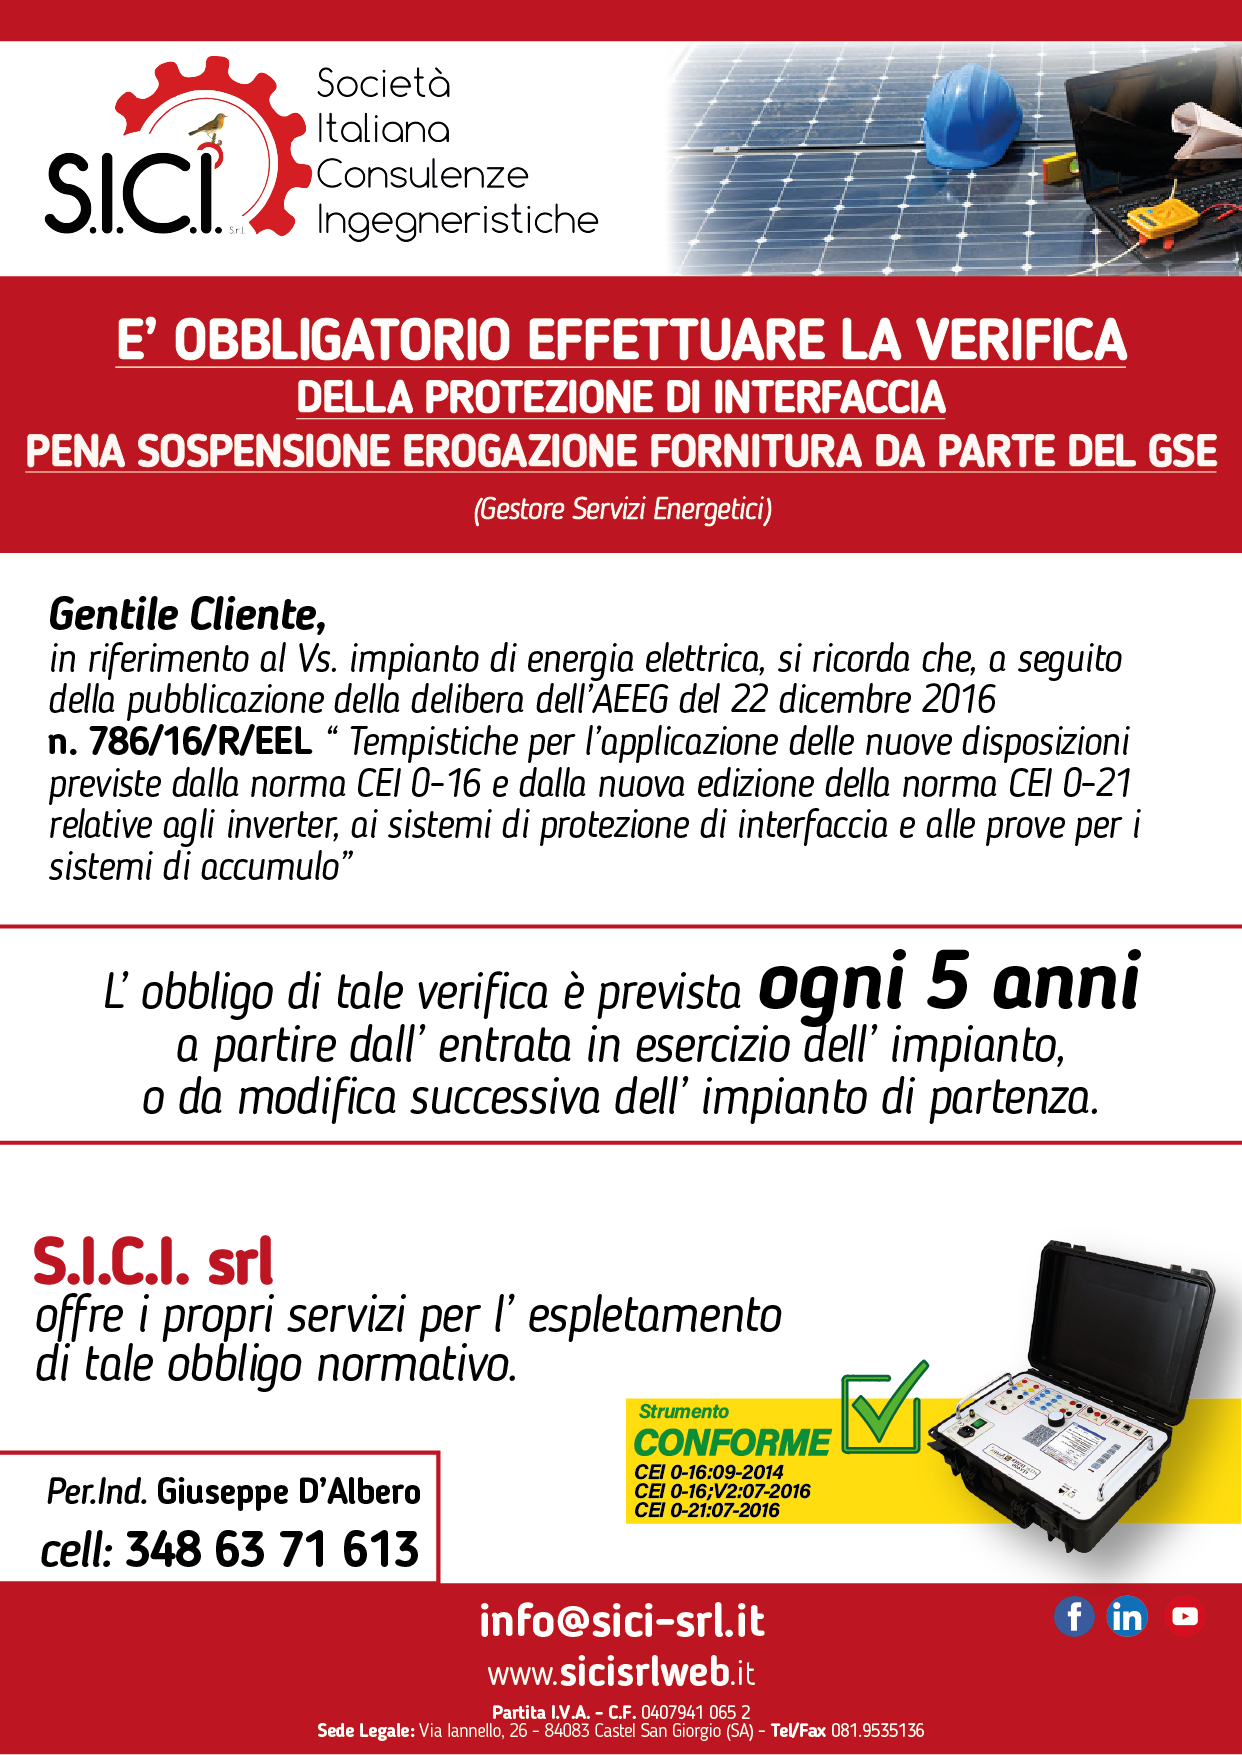 SICI - verifiche dispositivi interfaccia